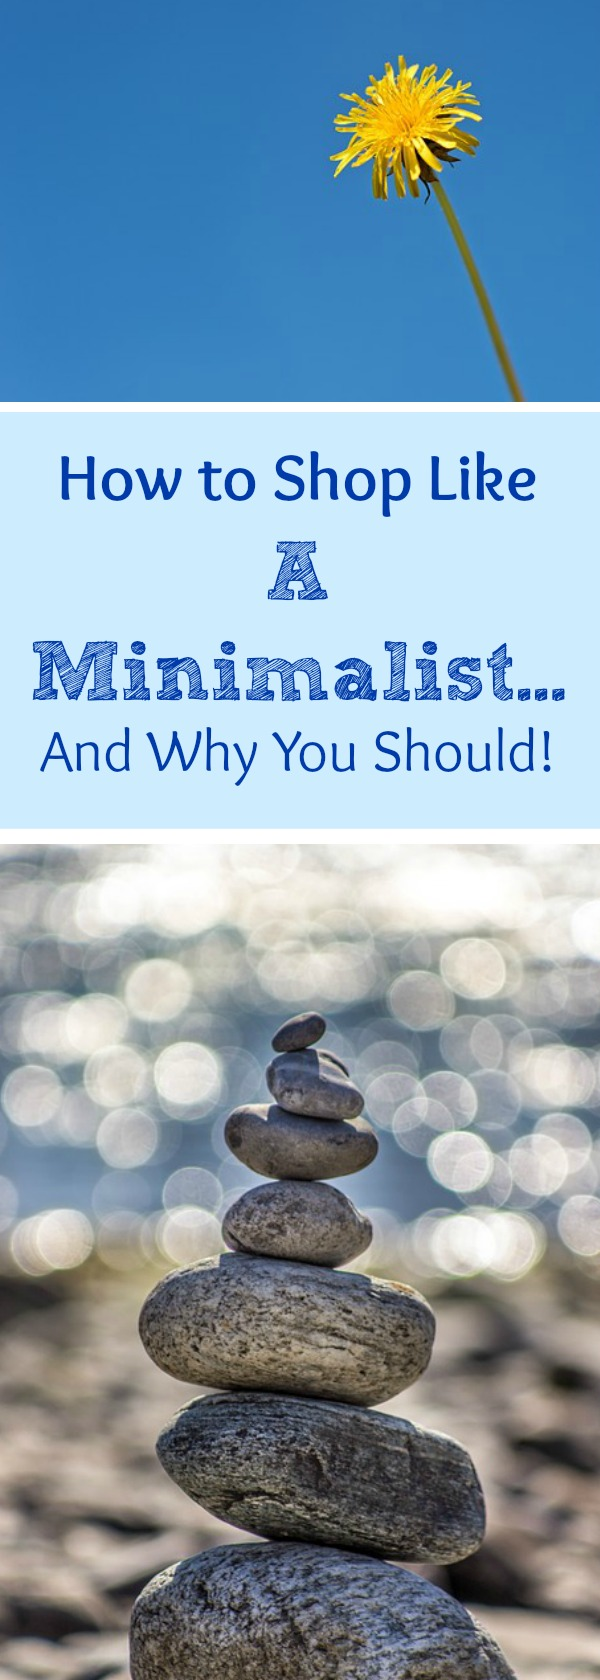 "How and Why to Shop Like a Minimalist!  So, with fear and trepidation (insert scary music), as I get ready to really go LOOK at the most cluttered place in our home (The Loft) and make a plan to actually follow through to declutter it and make it beautiful, I am sitting here thinking that  OBVIOUSLY, if I had been thinking like a Minimalist BEFORE I bought all that ""stuff,"" then I wouldn't be having to spend my time on this project now!"